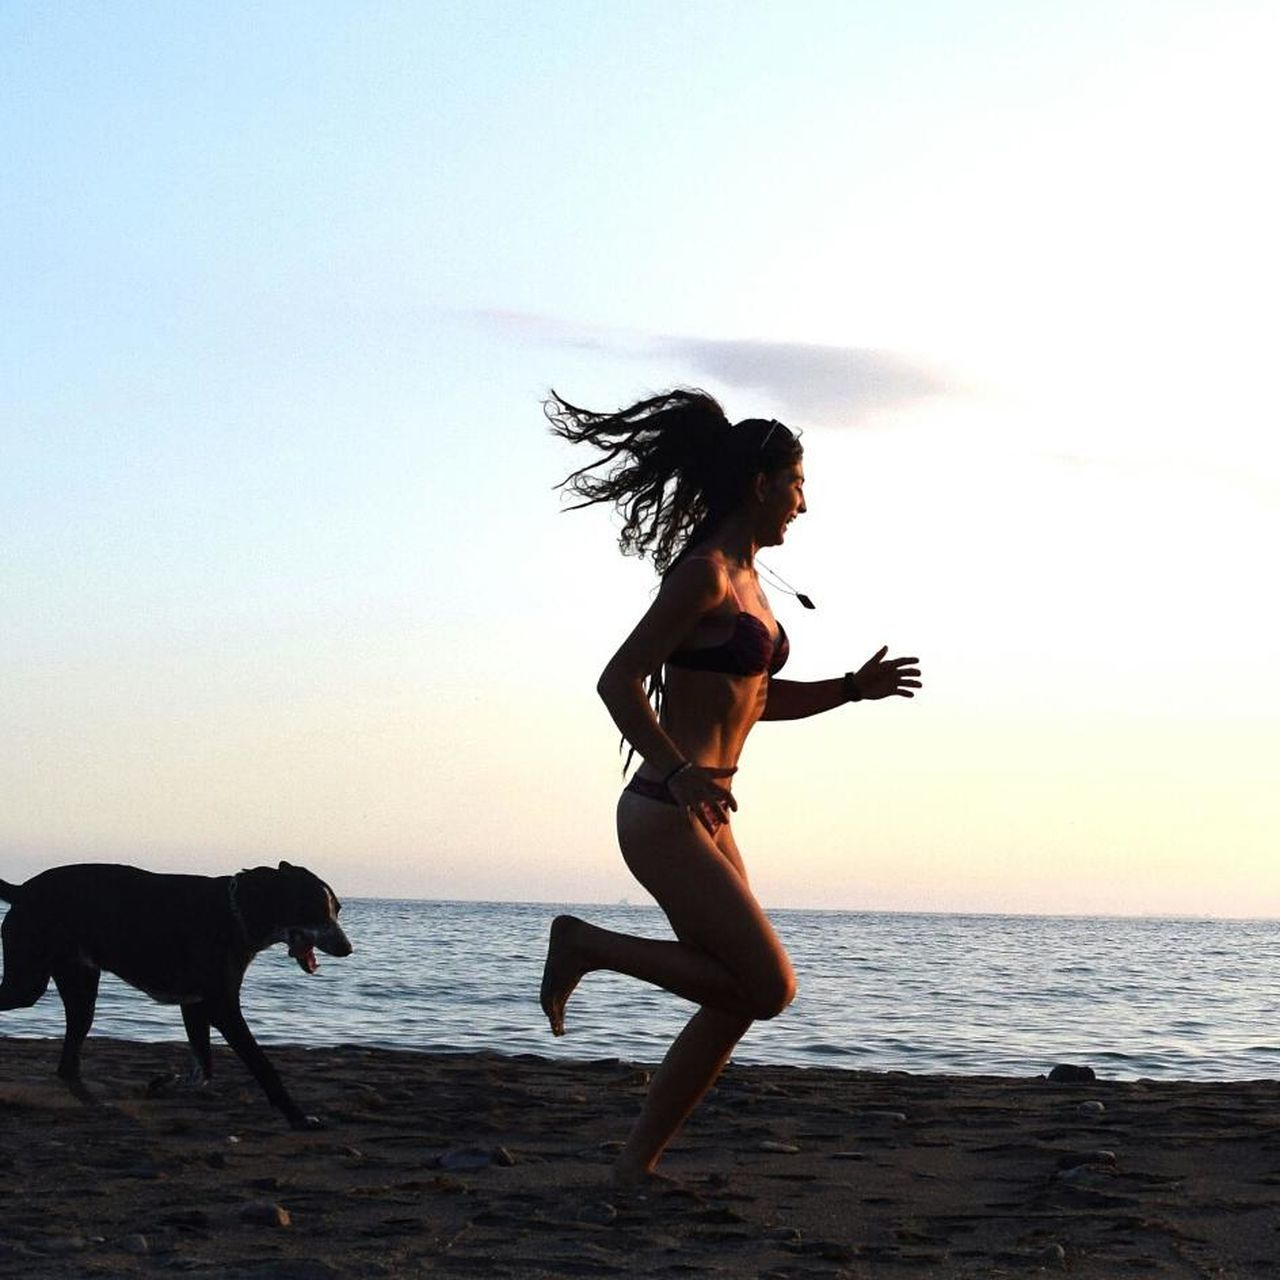 sunset, beach, dog, sea, domestic animals, pets, silhouette, one animal, animal themes, nature, real people, full length, horizon over water, lifestyles, sky, mammal, outdoors, standing, side view, scenics, motion, beauty in nature, one person, water, young women, young adult, day, people